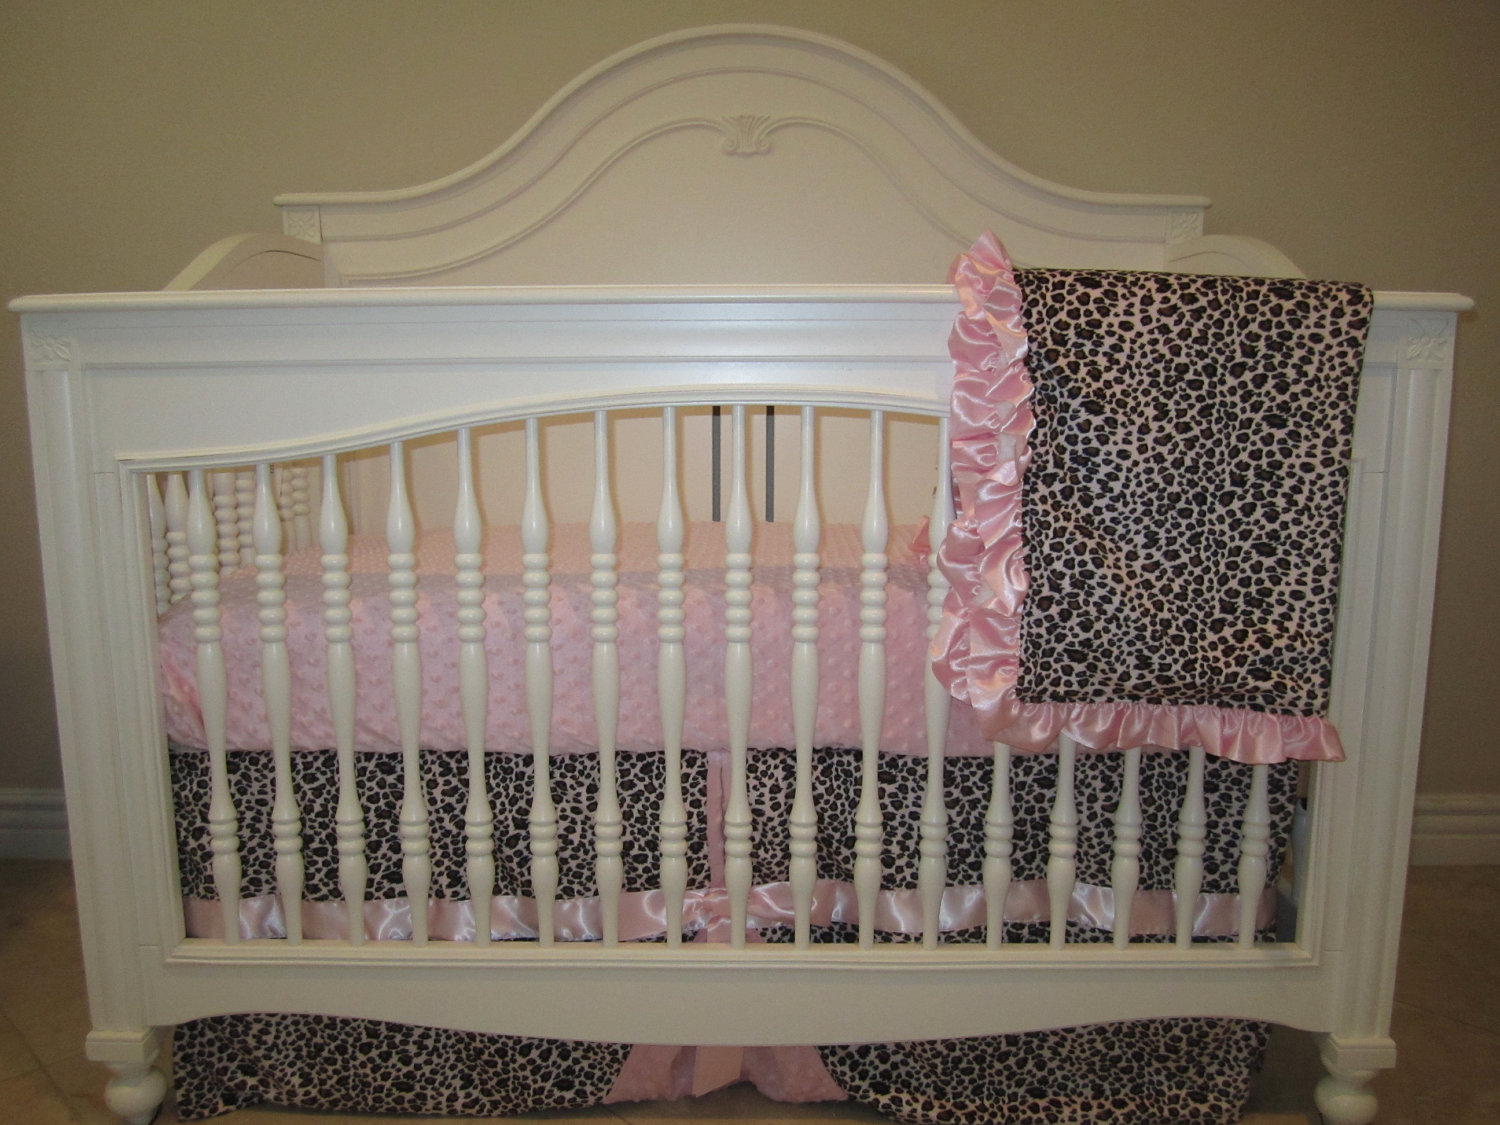 explore pink leopard baby bedding set 3 piece crib bedding setno